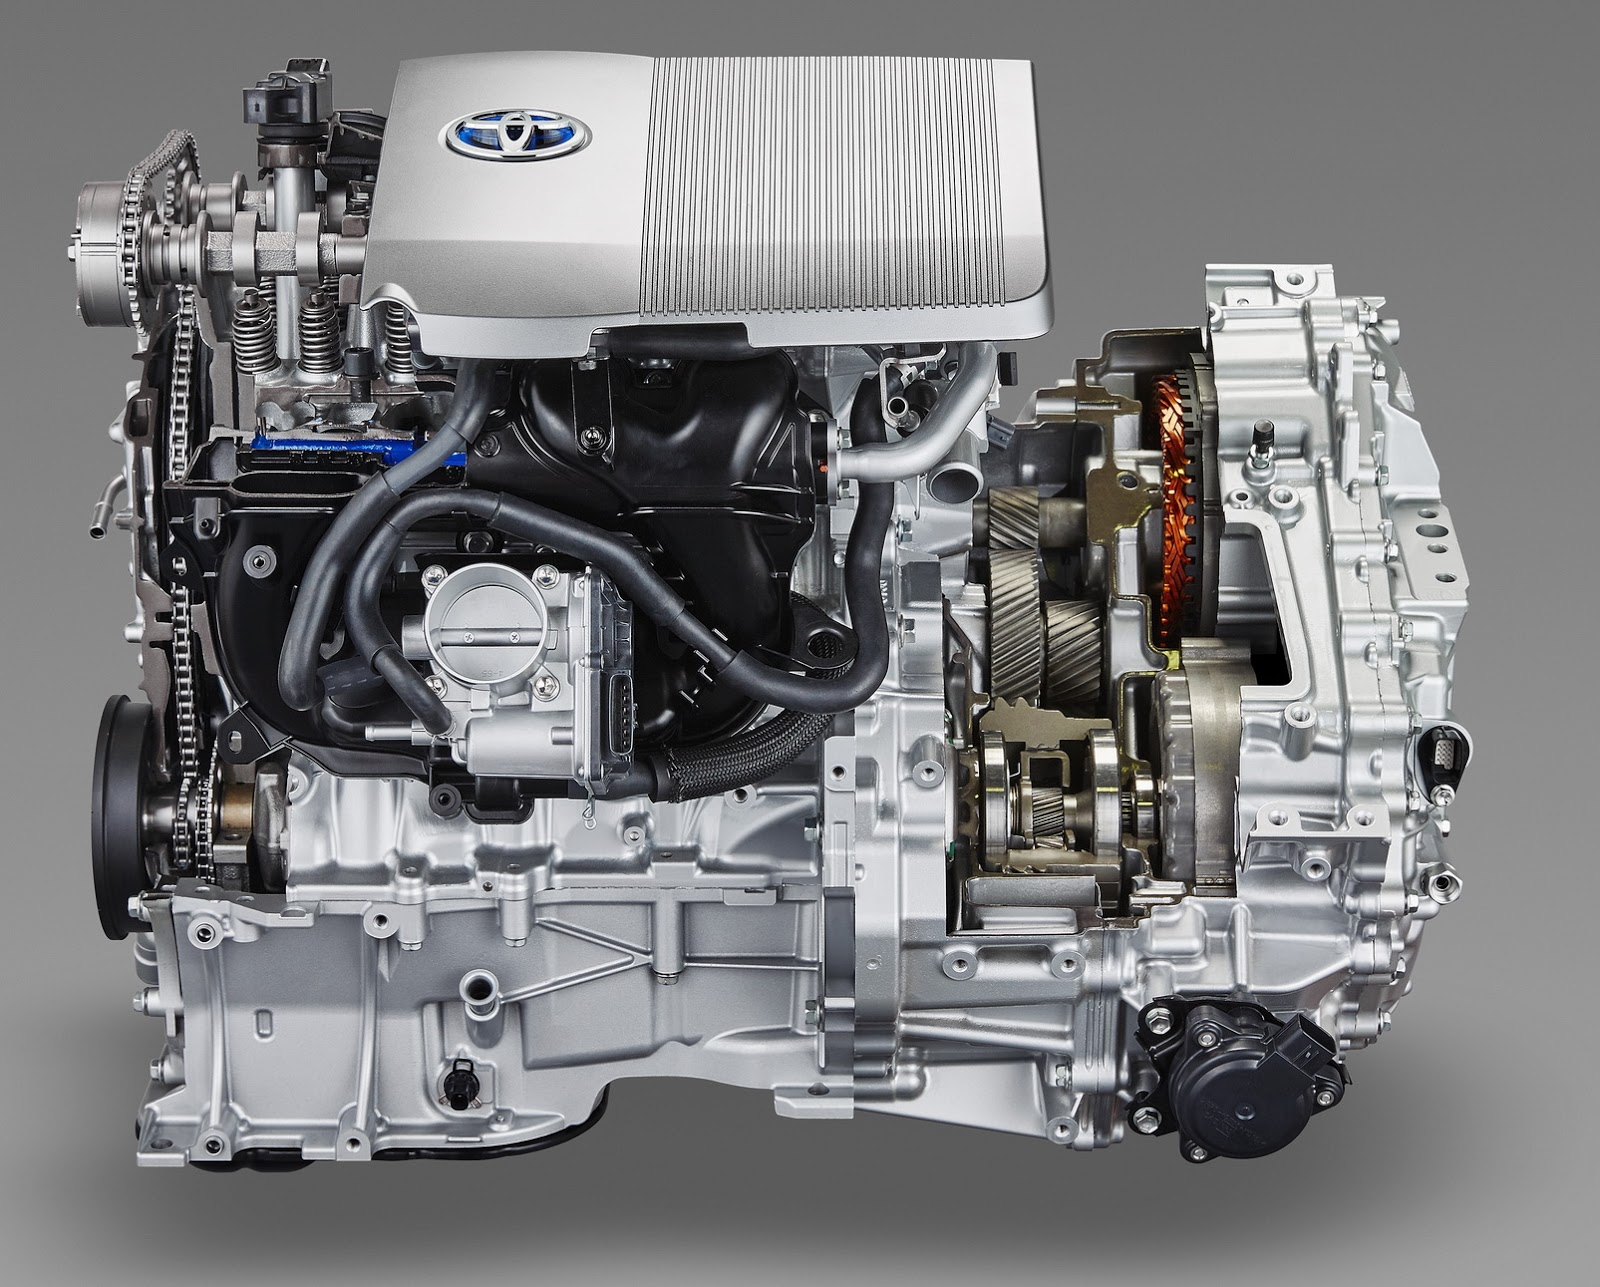 Toyota Prius Pricing In The Us Starts At Photo Gallery on 1993 Toyota Camry Cooling System